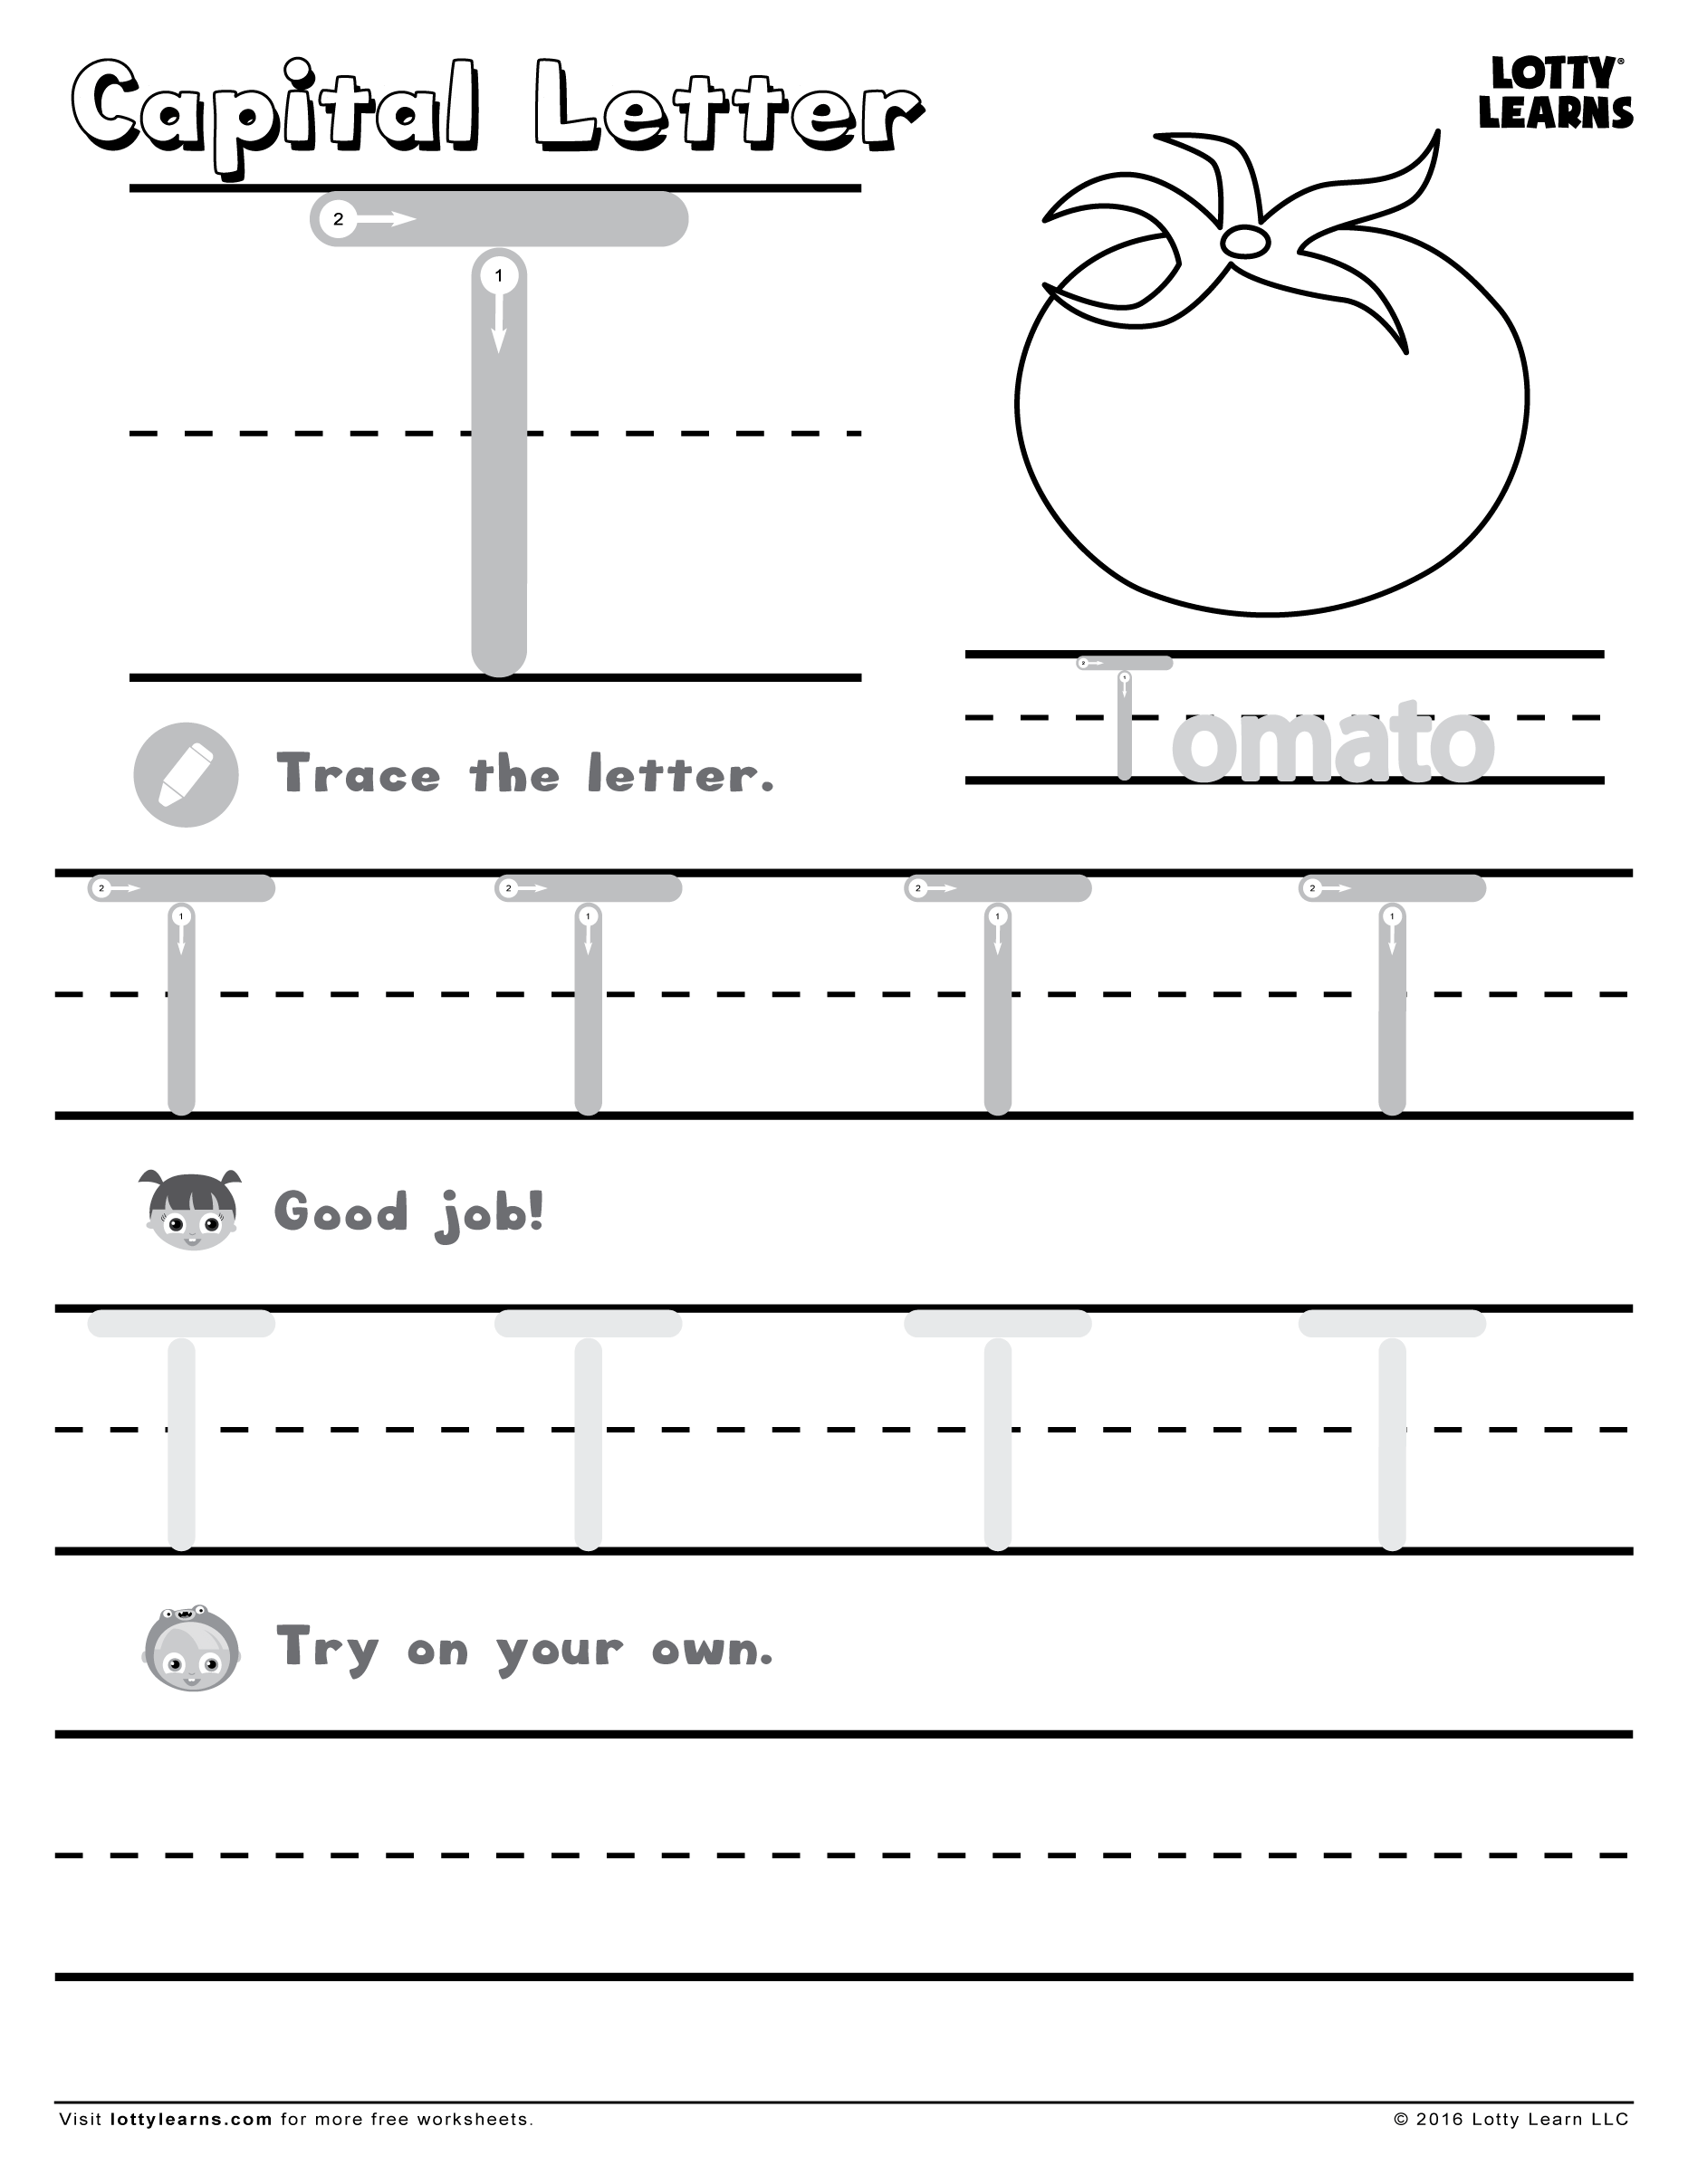 Worksheets Letter Y Worksheet capital letter t lotty learns abc printables uppercase learns